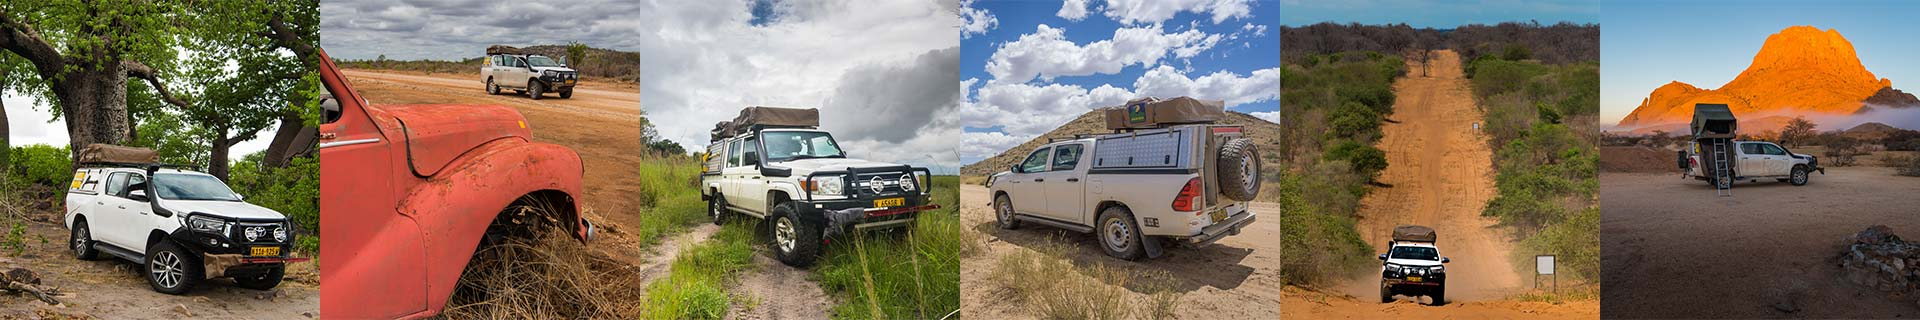 Autohuur-Namibie-4x4-Off-Road-voertuigen-max-5-personen-photo-footer